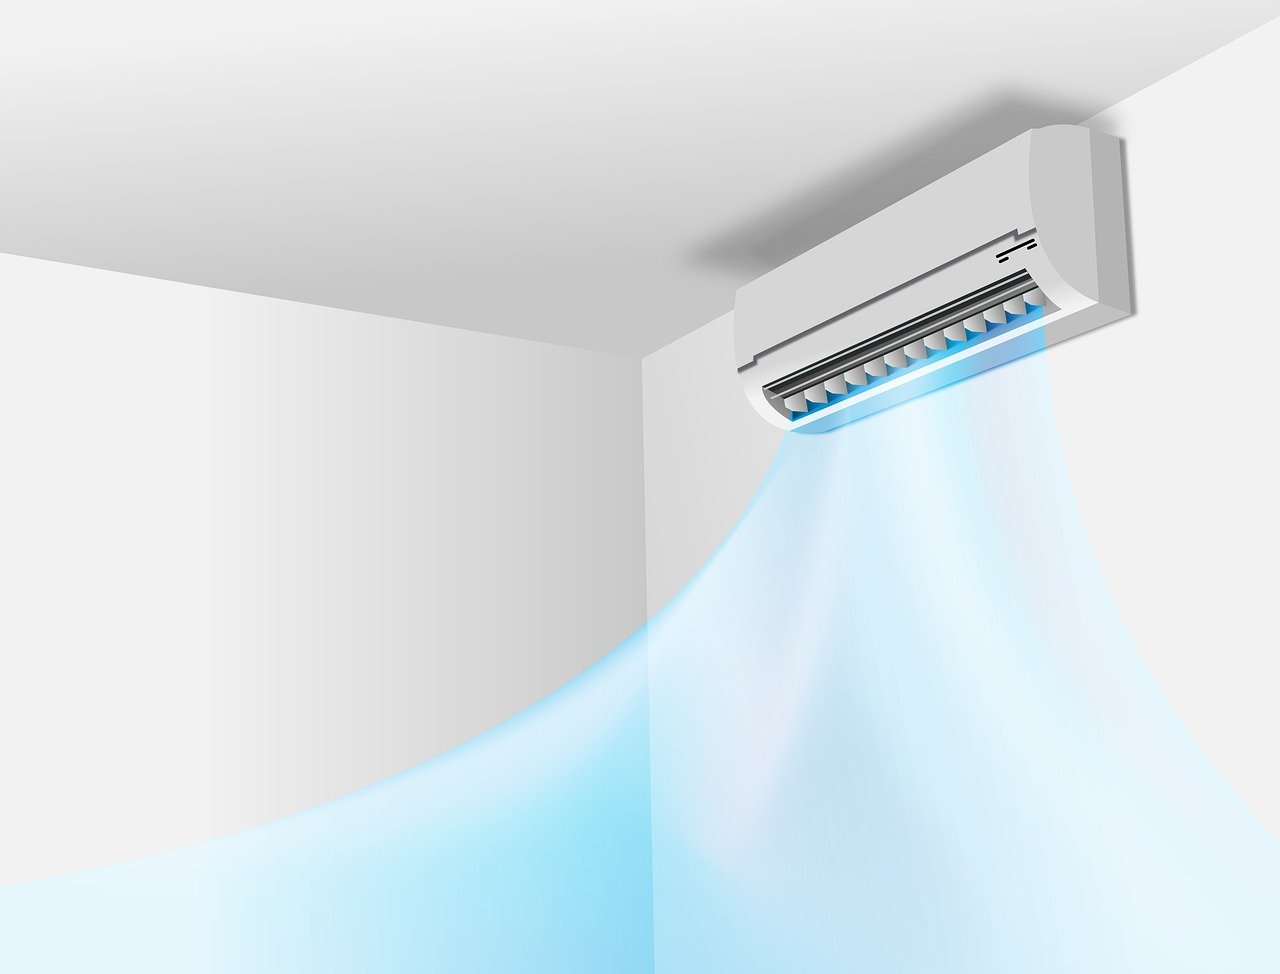 image - Why Should You Have an Air Conditioning Unit?